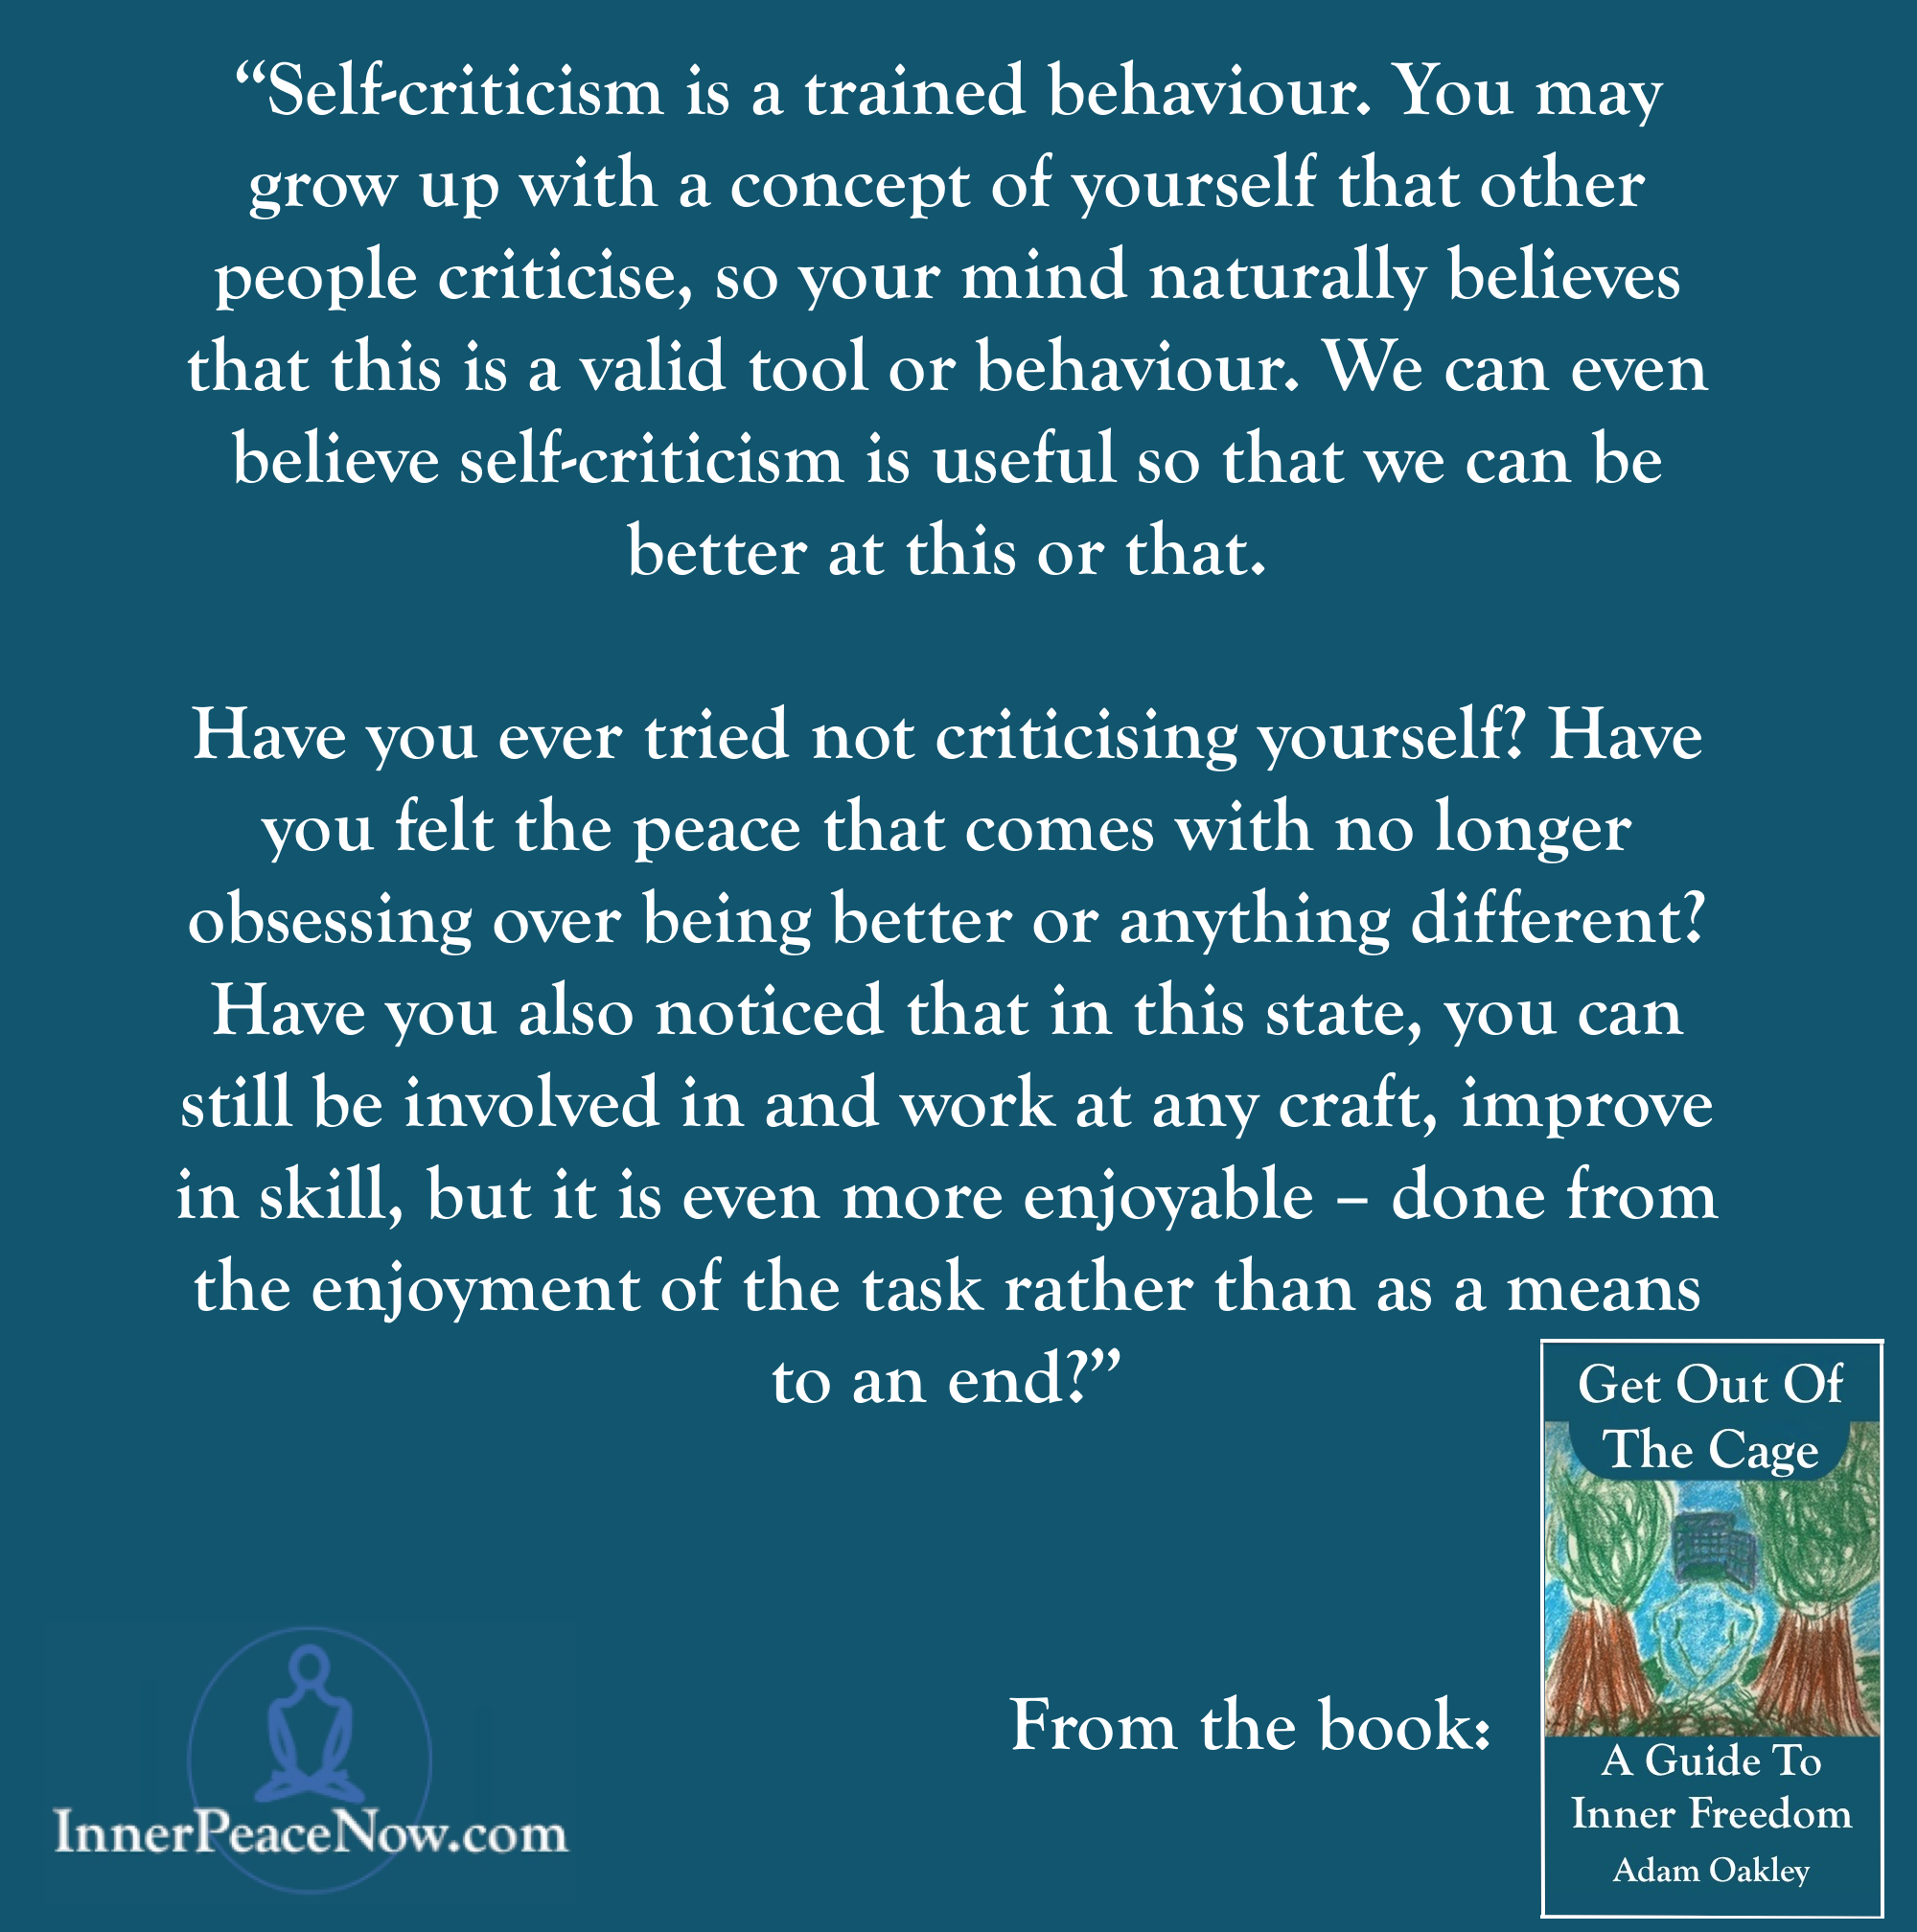 Self-Criticism - Get Out Of The Cage Quote